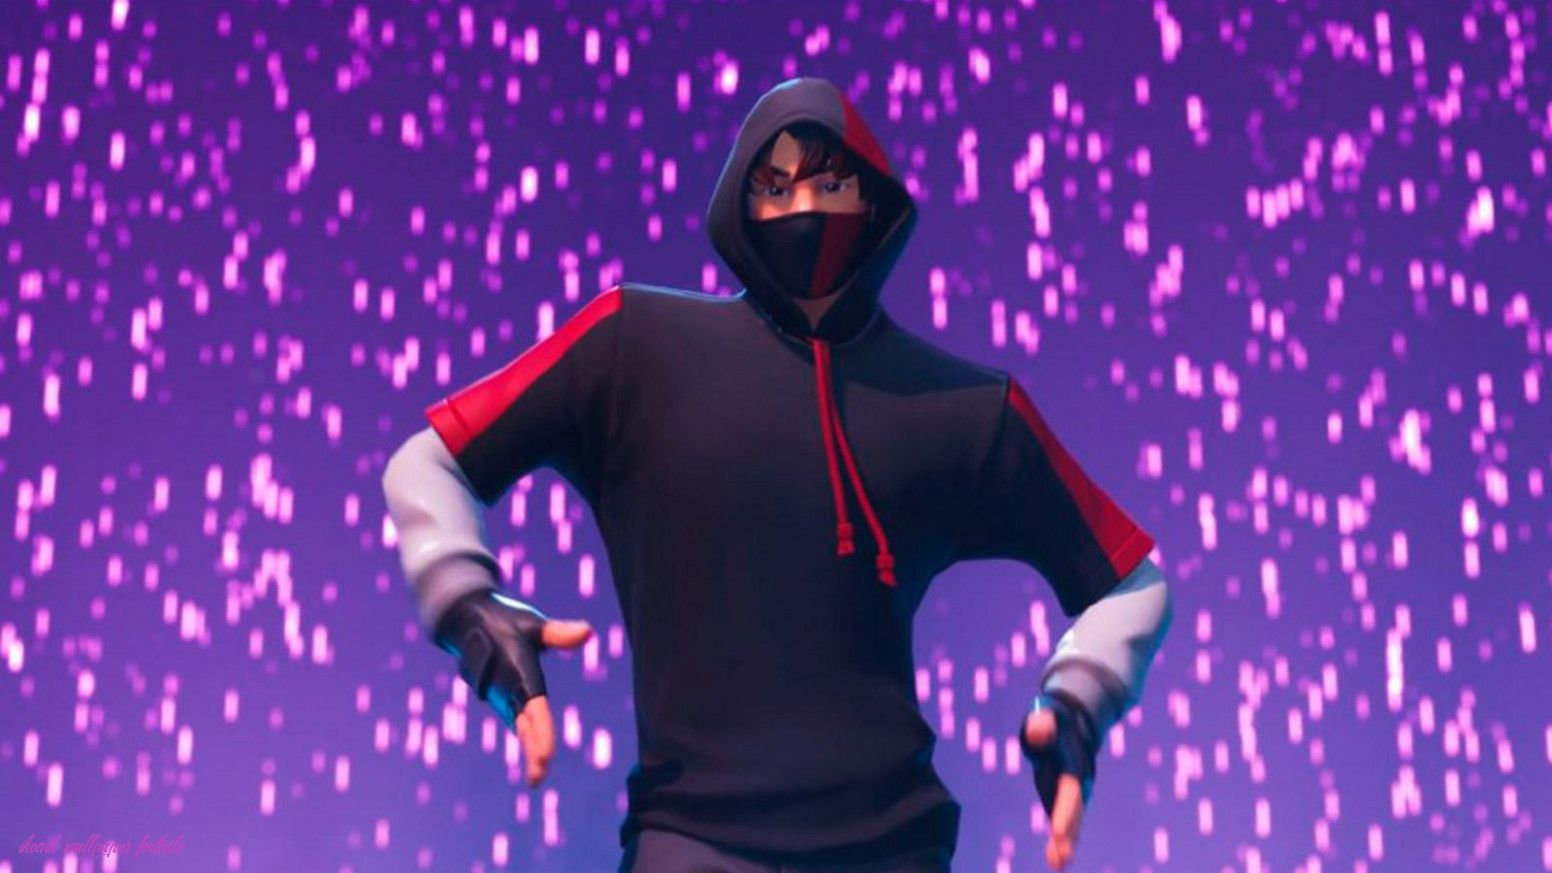 The 11 Common Stereotypes When It Comes To Ikonik Wallpaper